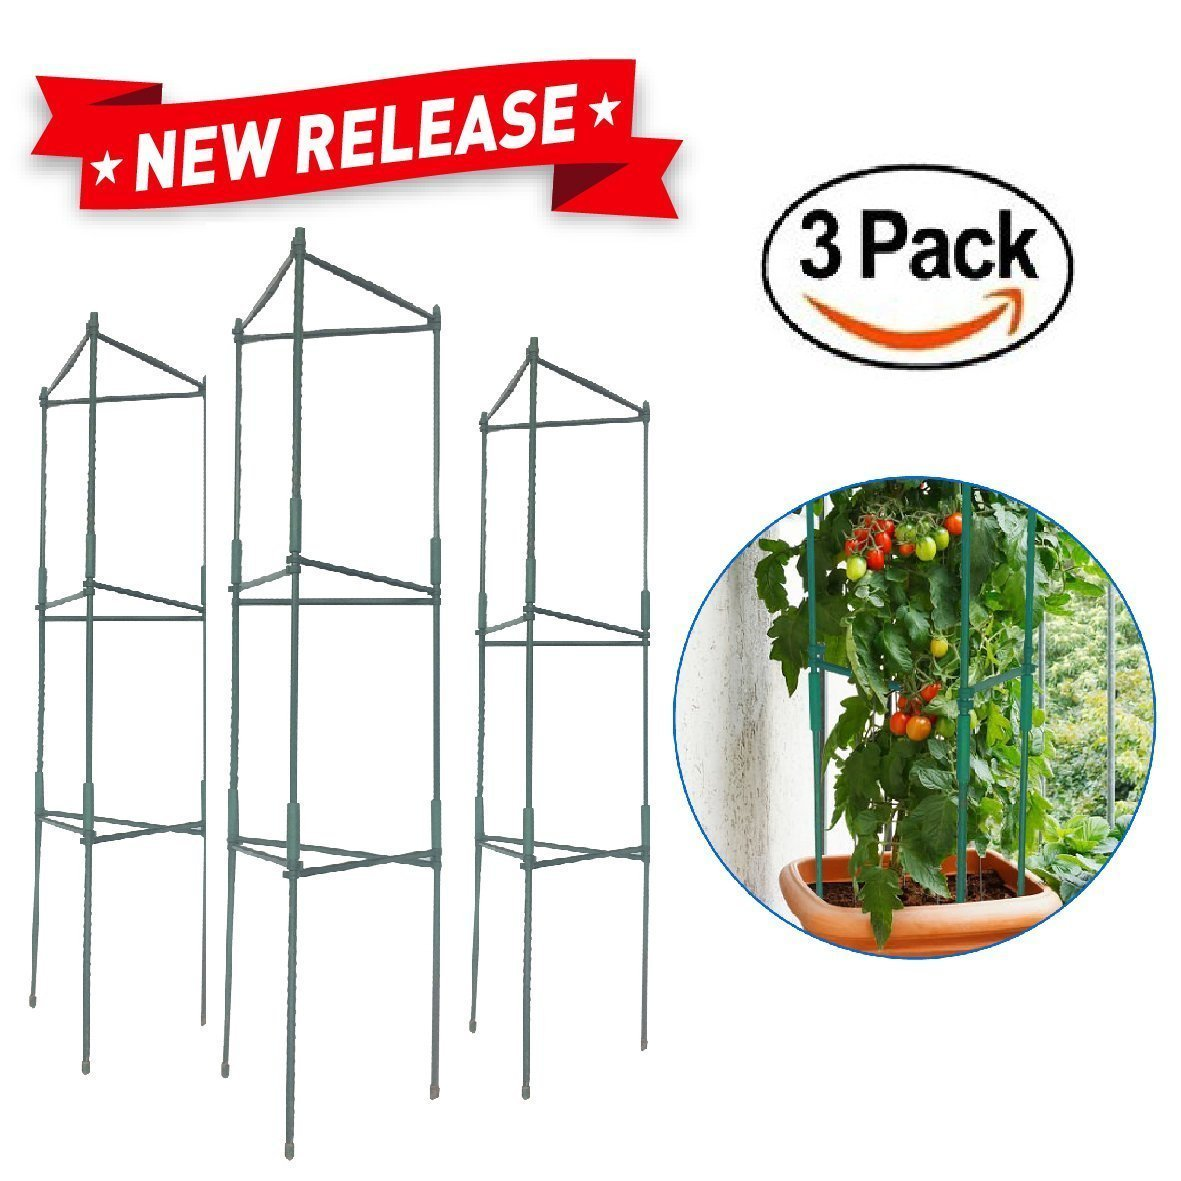 EasyGO Products EGP-GARD-020 Cages – Stakes-Vegetable Trellis-3 Pack Tomato Plant